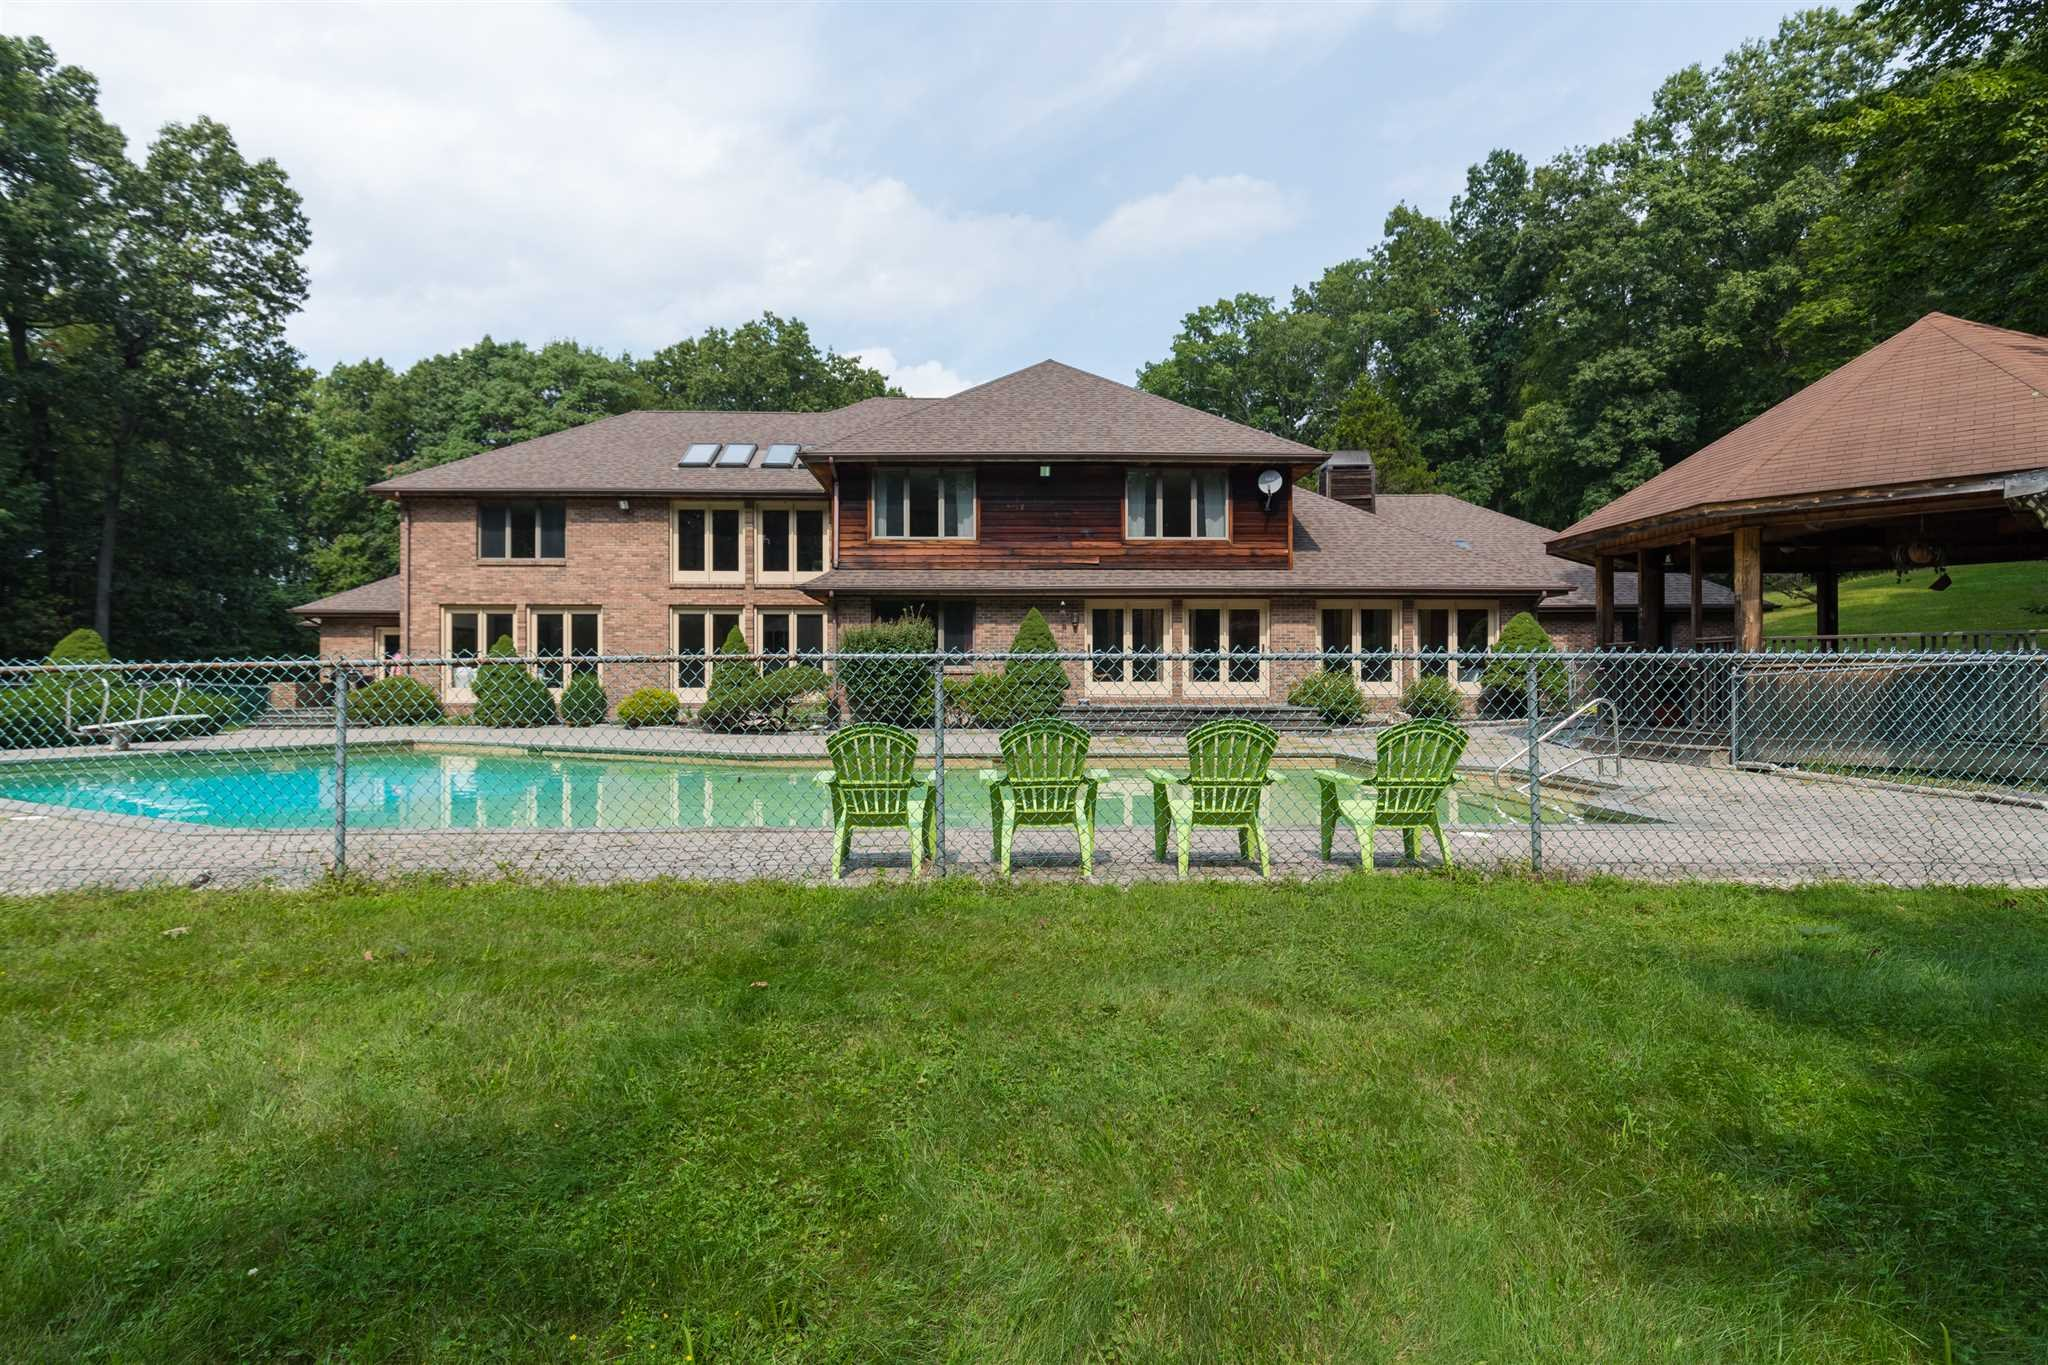 Single Family Home for Sale at 281 WALSH ROAD 281 WALSH ROAD La Grange, New York 12540 United States